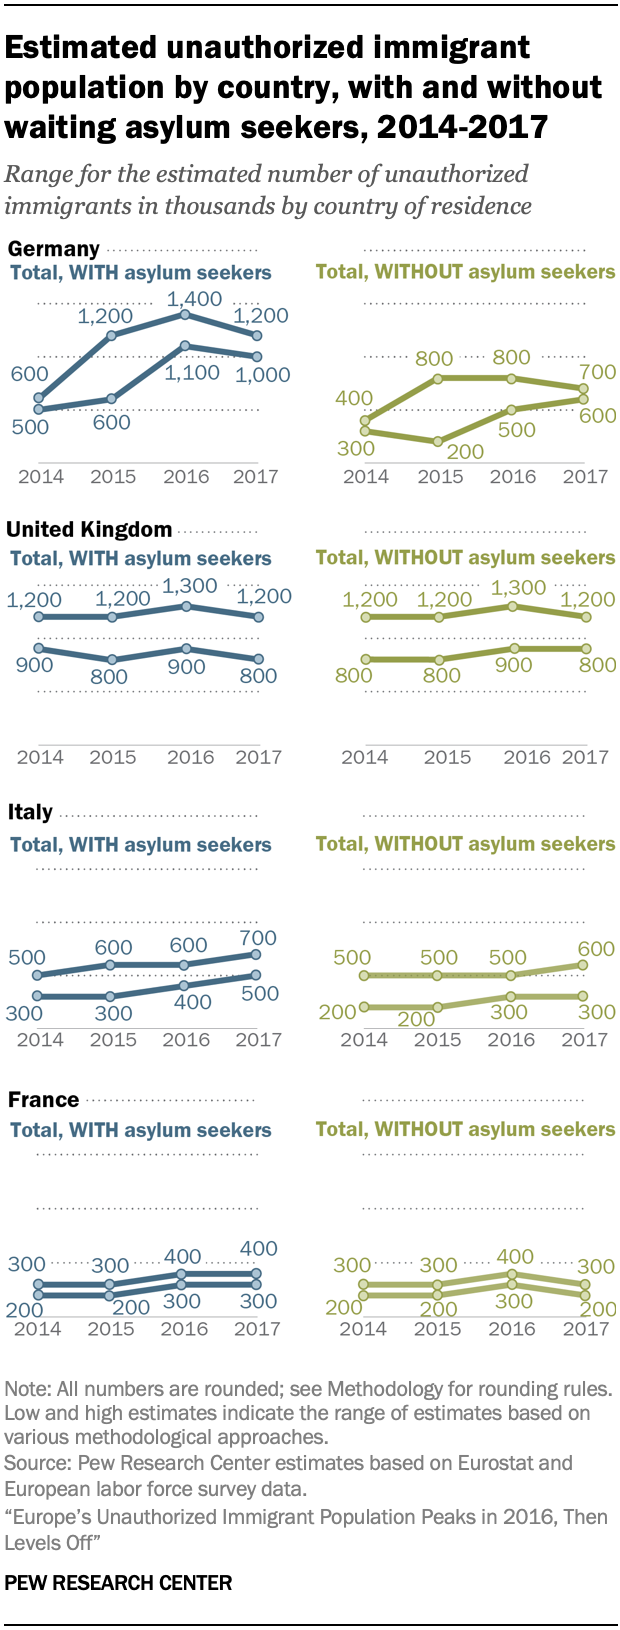 Estimated unauthorized immigrant population by country, with and without waiting asylum seekers, 2014-2017